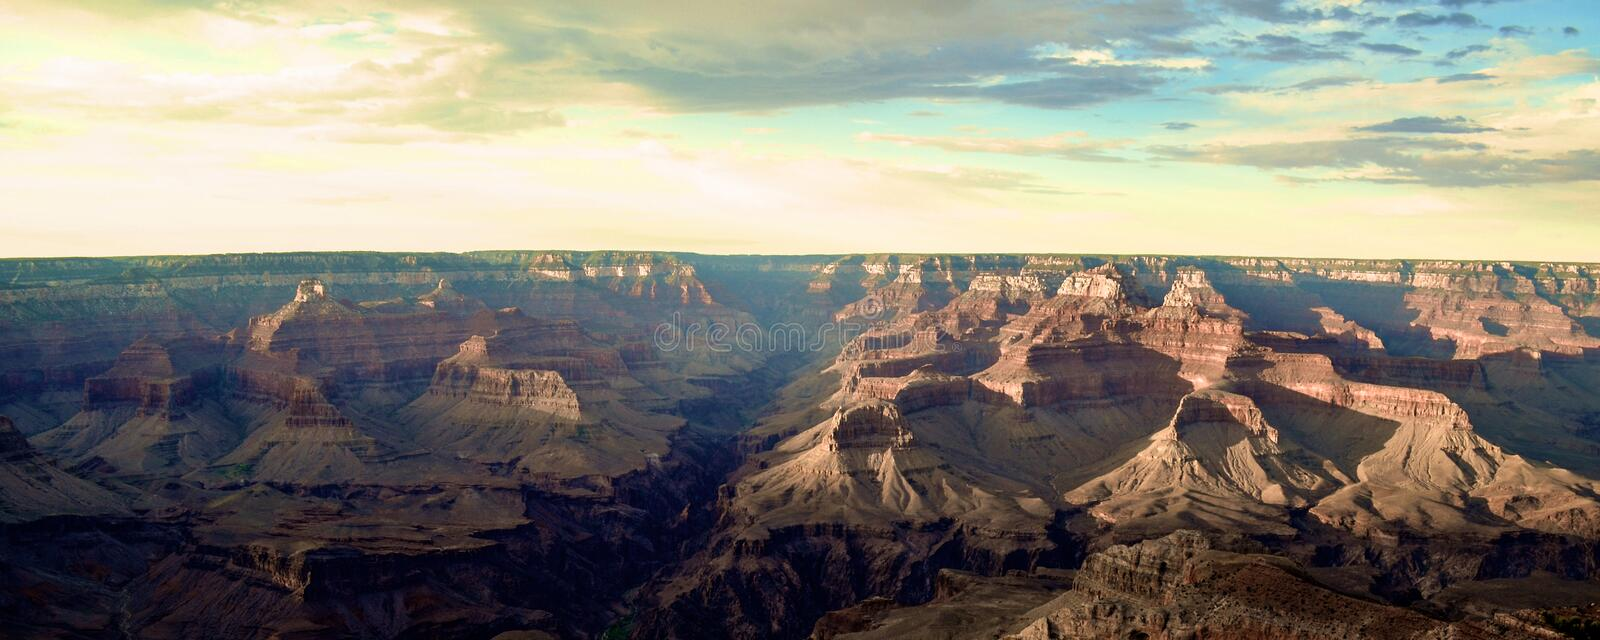 Il Grand Canyon fotografia stock